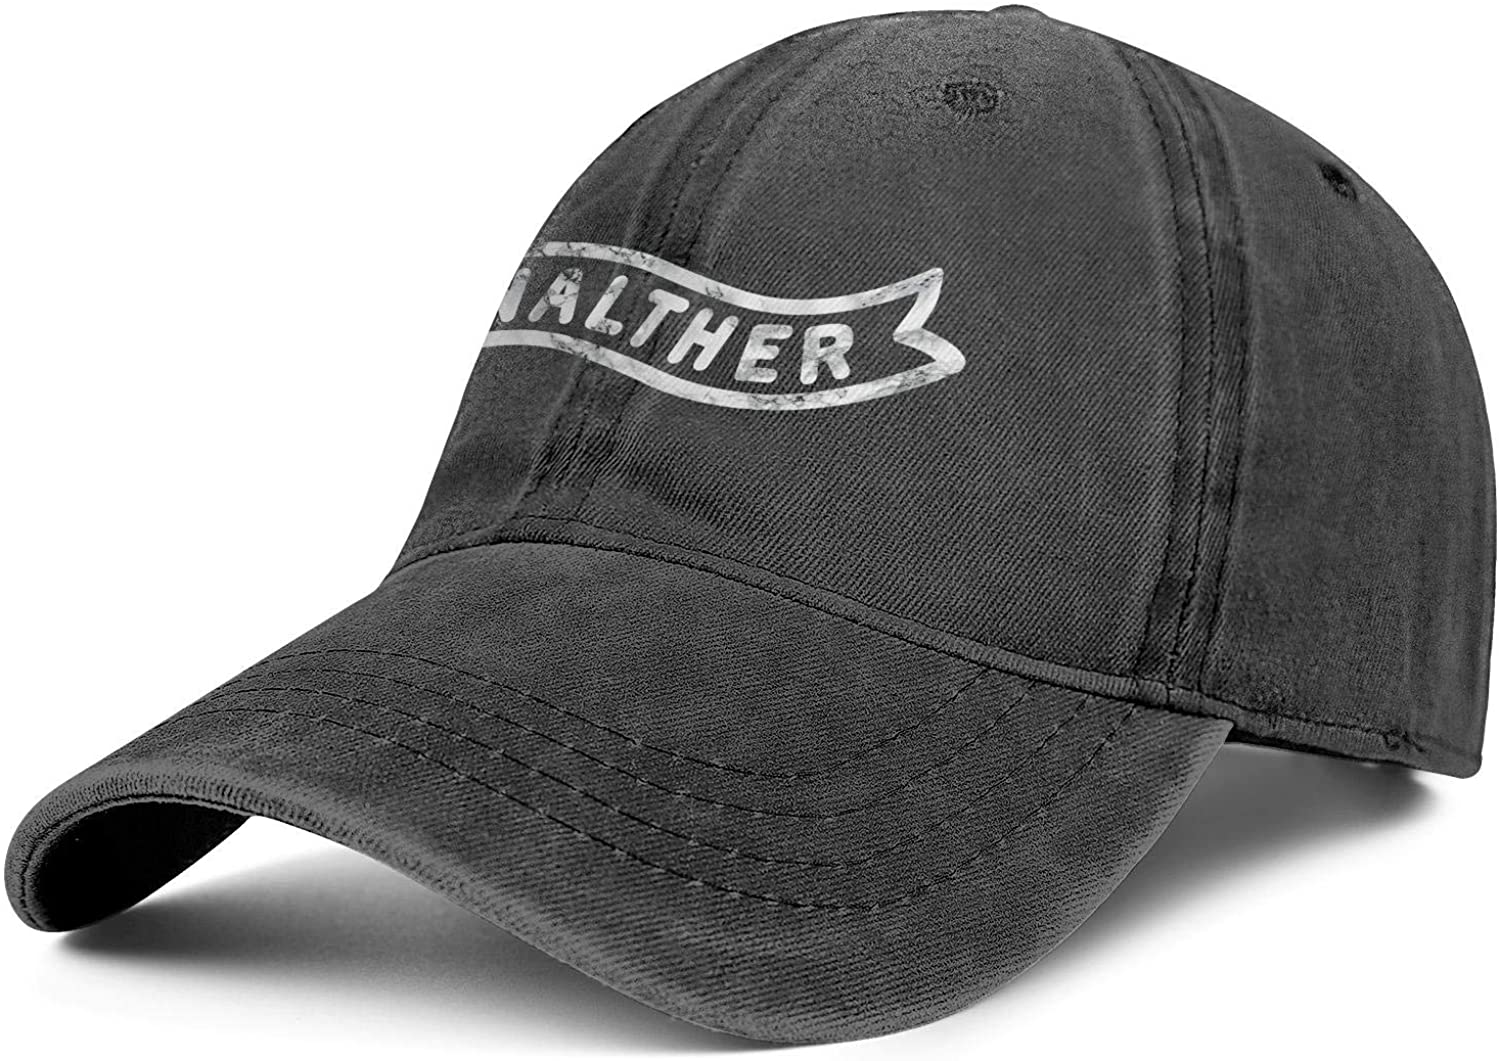 Mens Women Vintage Sale New Shipping Free Shipping price Baseball Cricket Hats Fashion Walther-ppq-pis